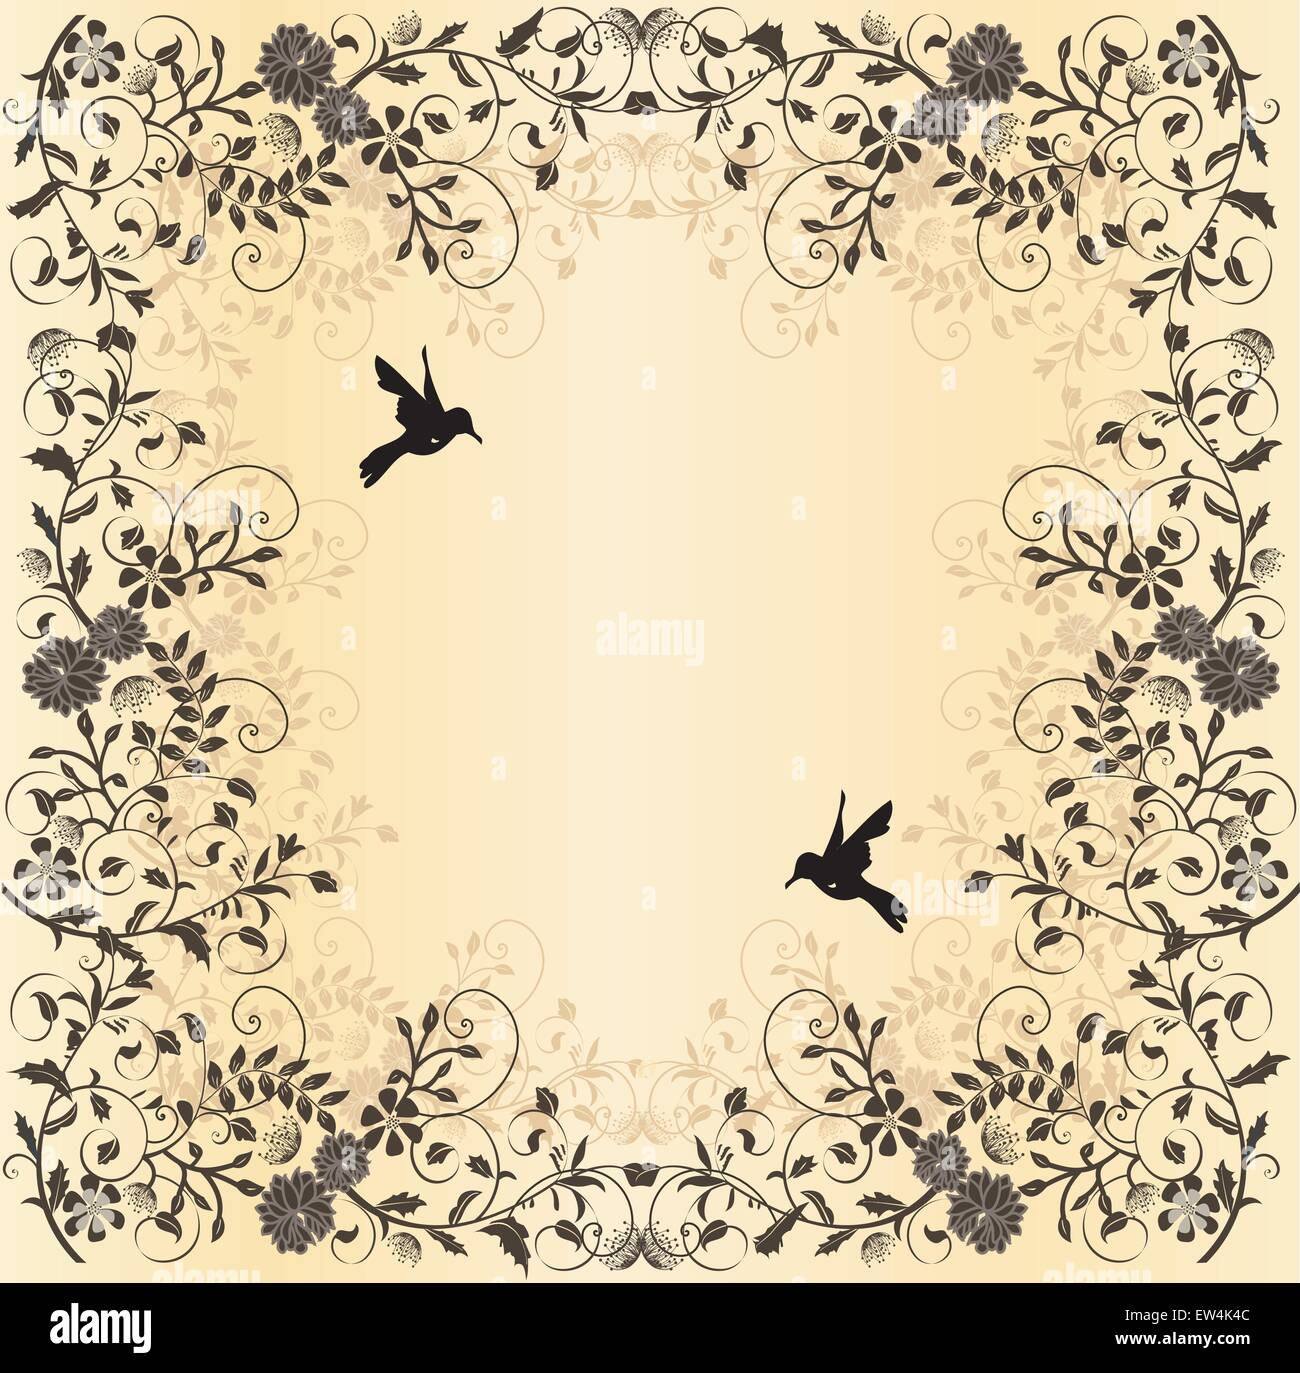 Vintage Wedding Invitation Card With Floral Design And Birds Gray On Stock Vector Image Art Alamy